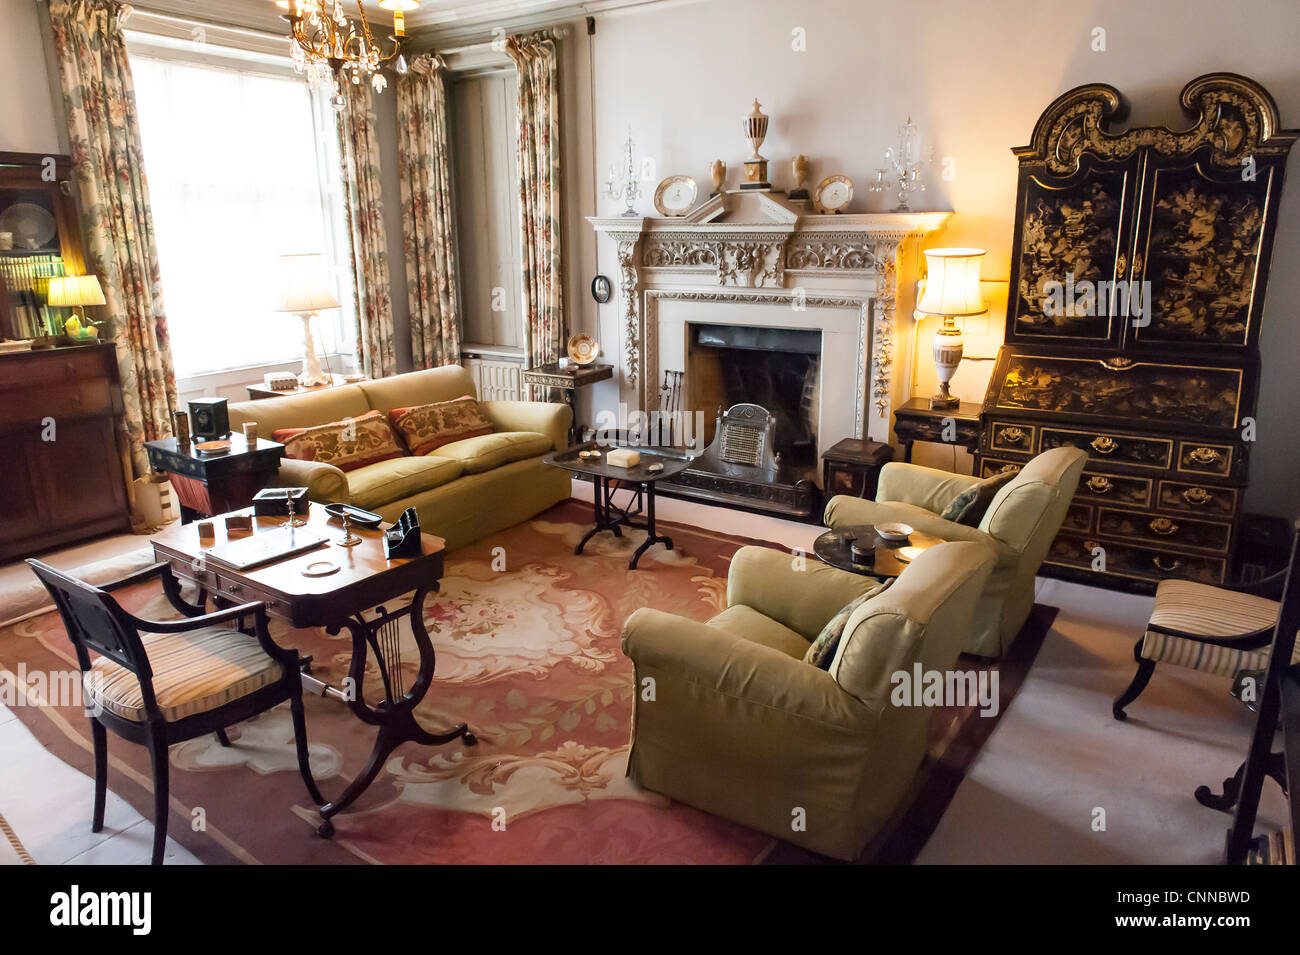 High Quality Living Room Interior Of An Victorian Style English Manor House